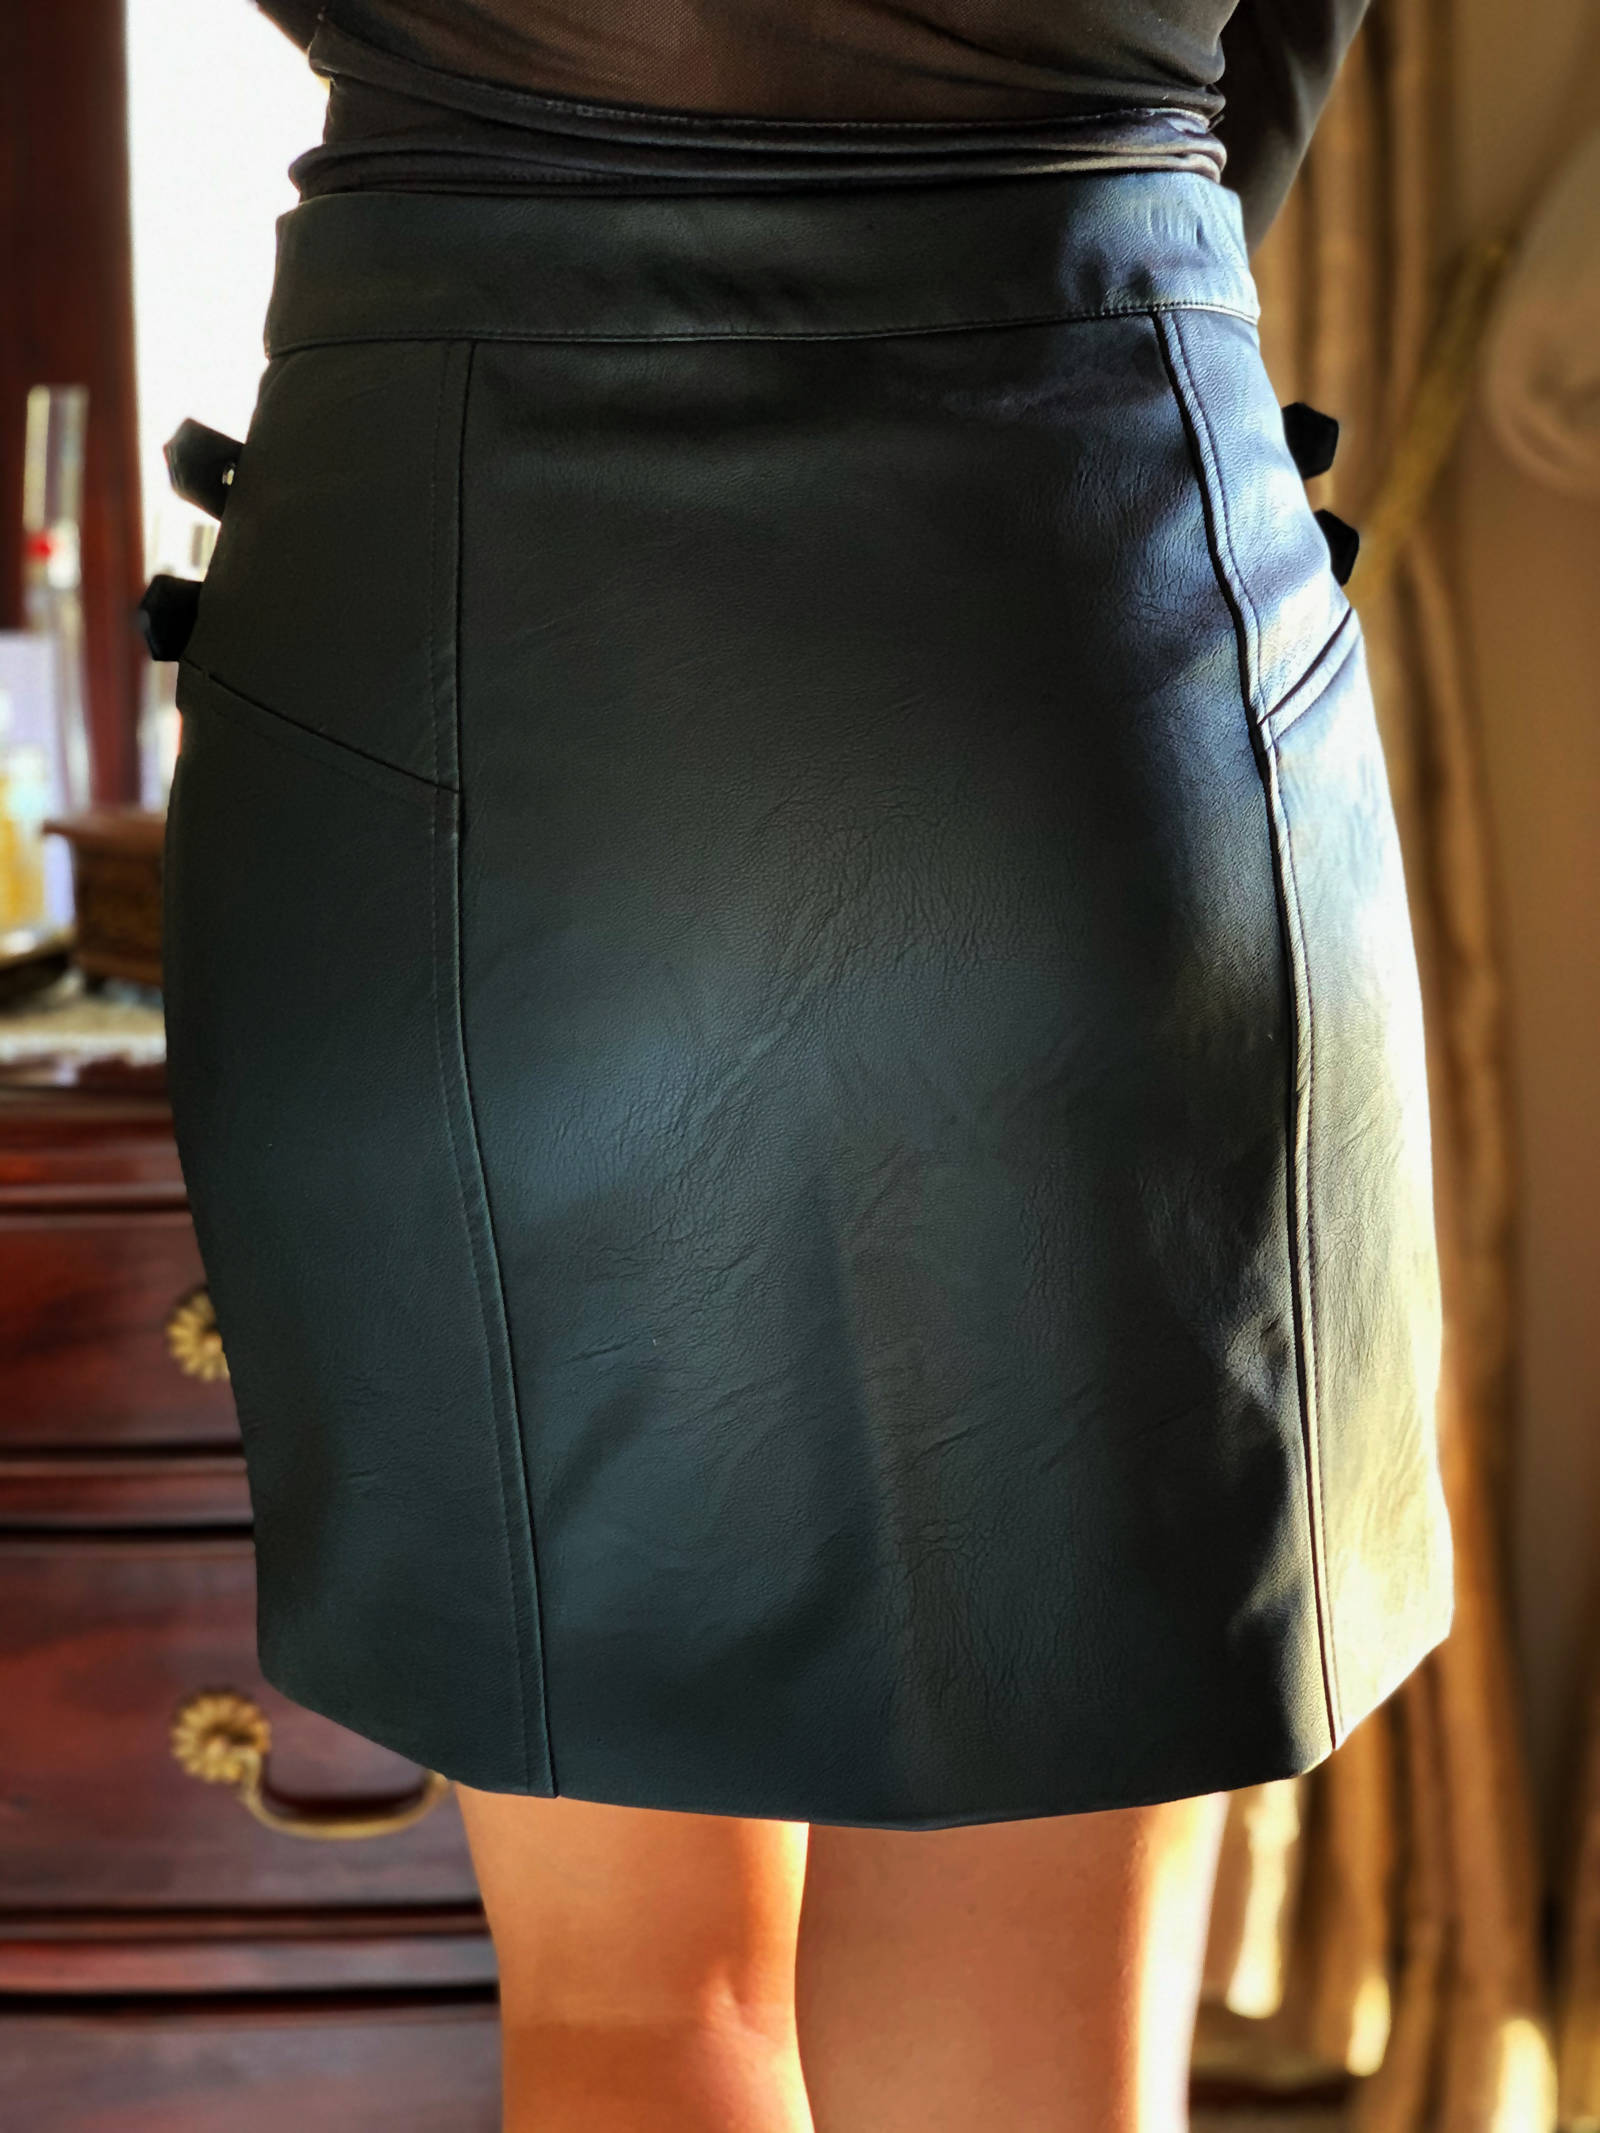 Topshop Black Faux Leather Miniskirt